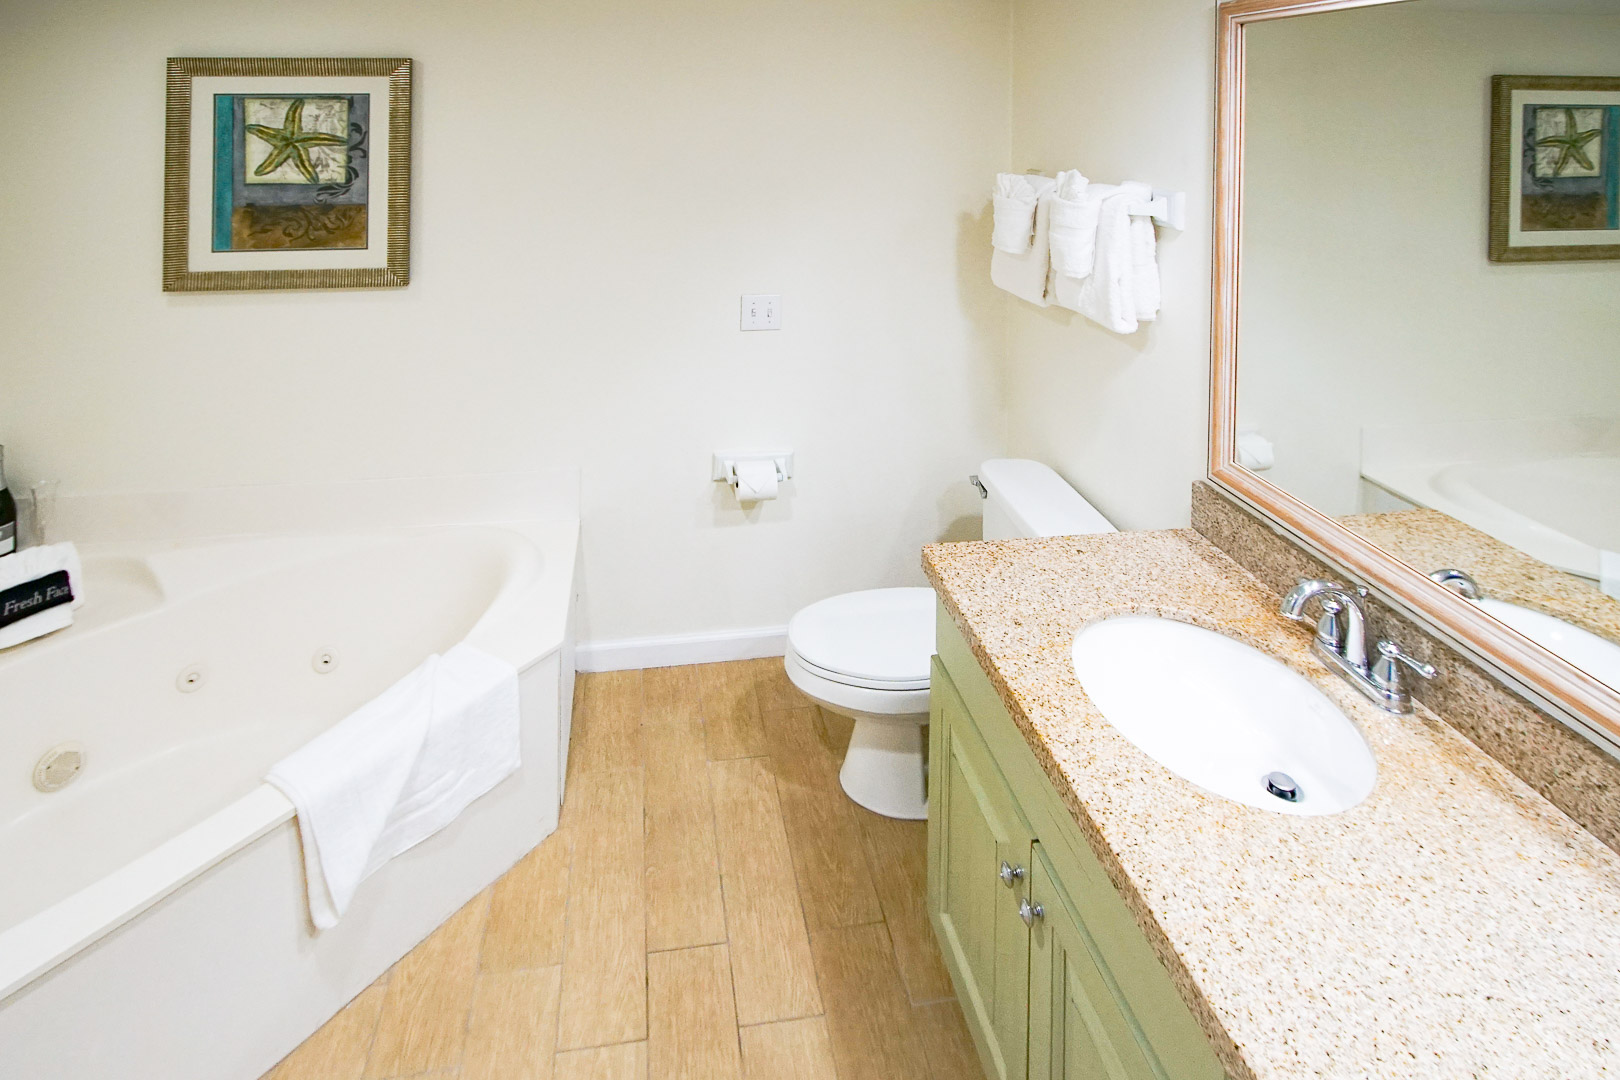 An airy bathroom with jacuzzi tub at VRI's The Resort on Cocoa Beach in Florida.